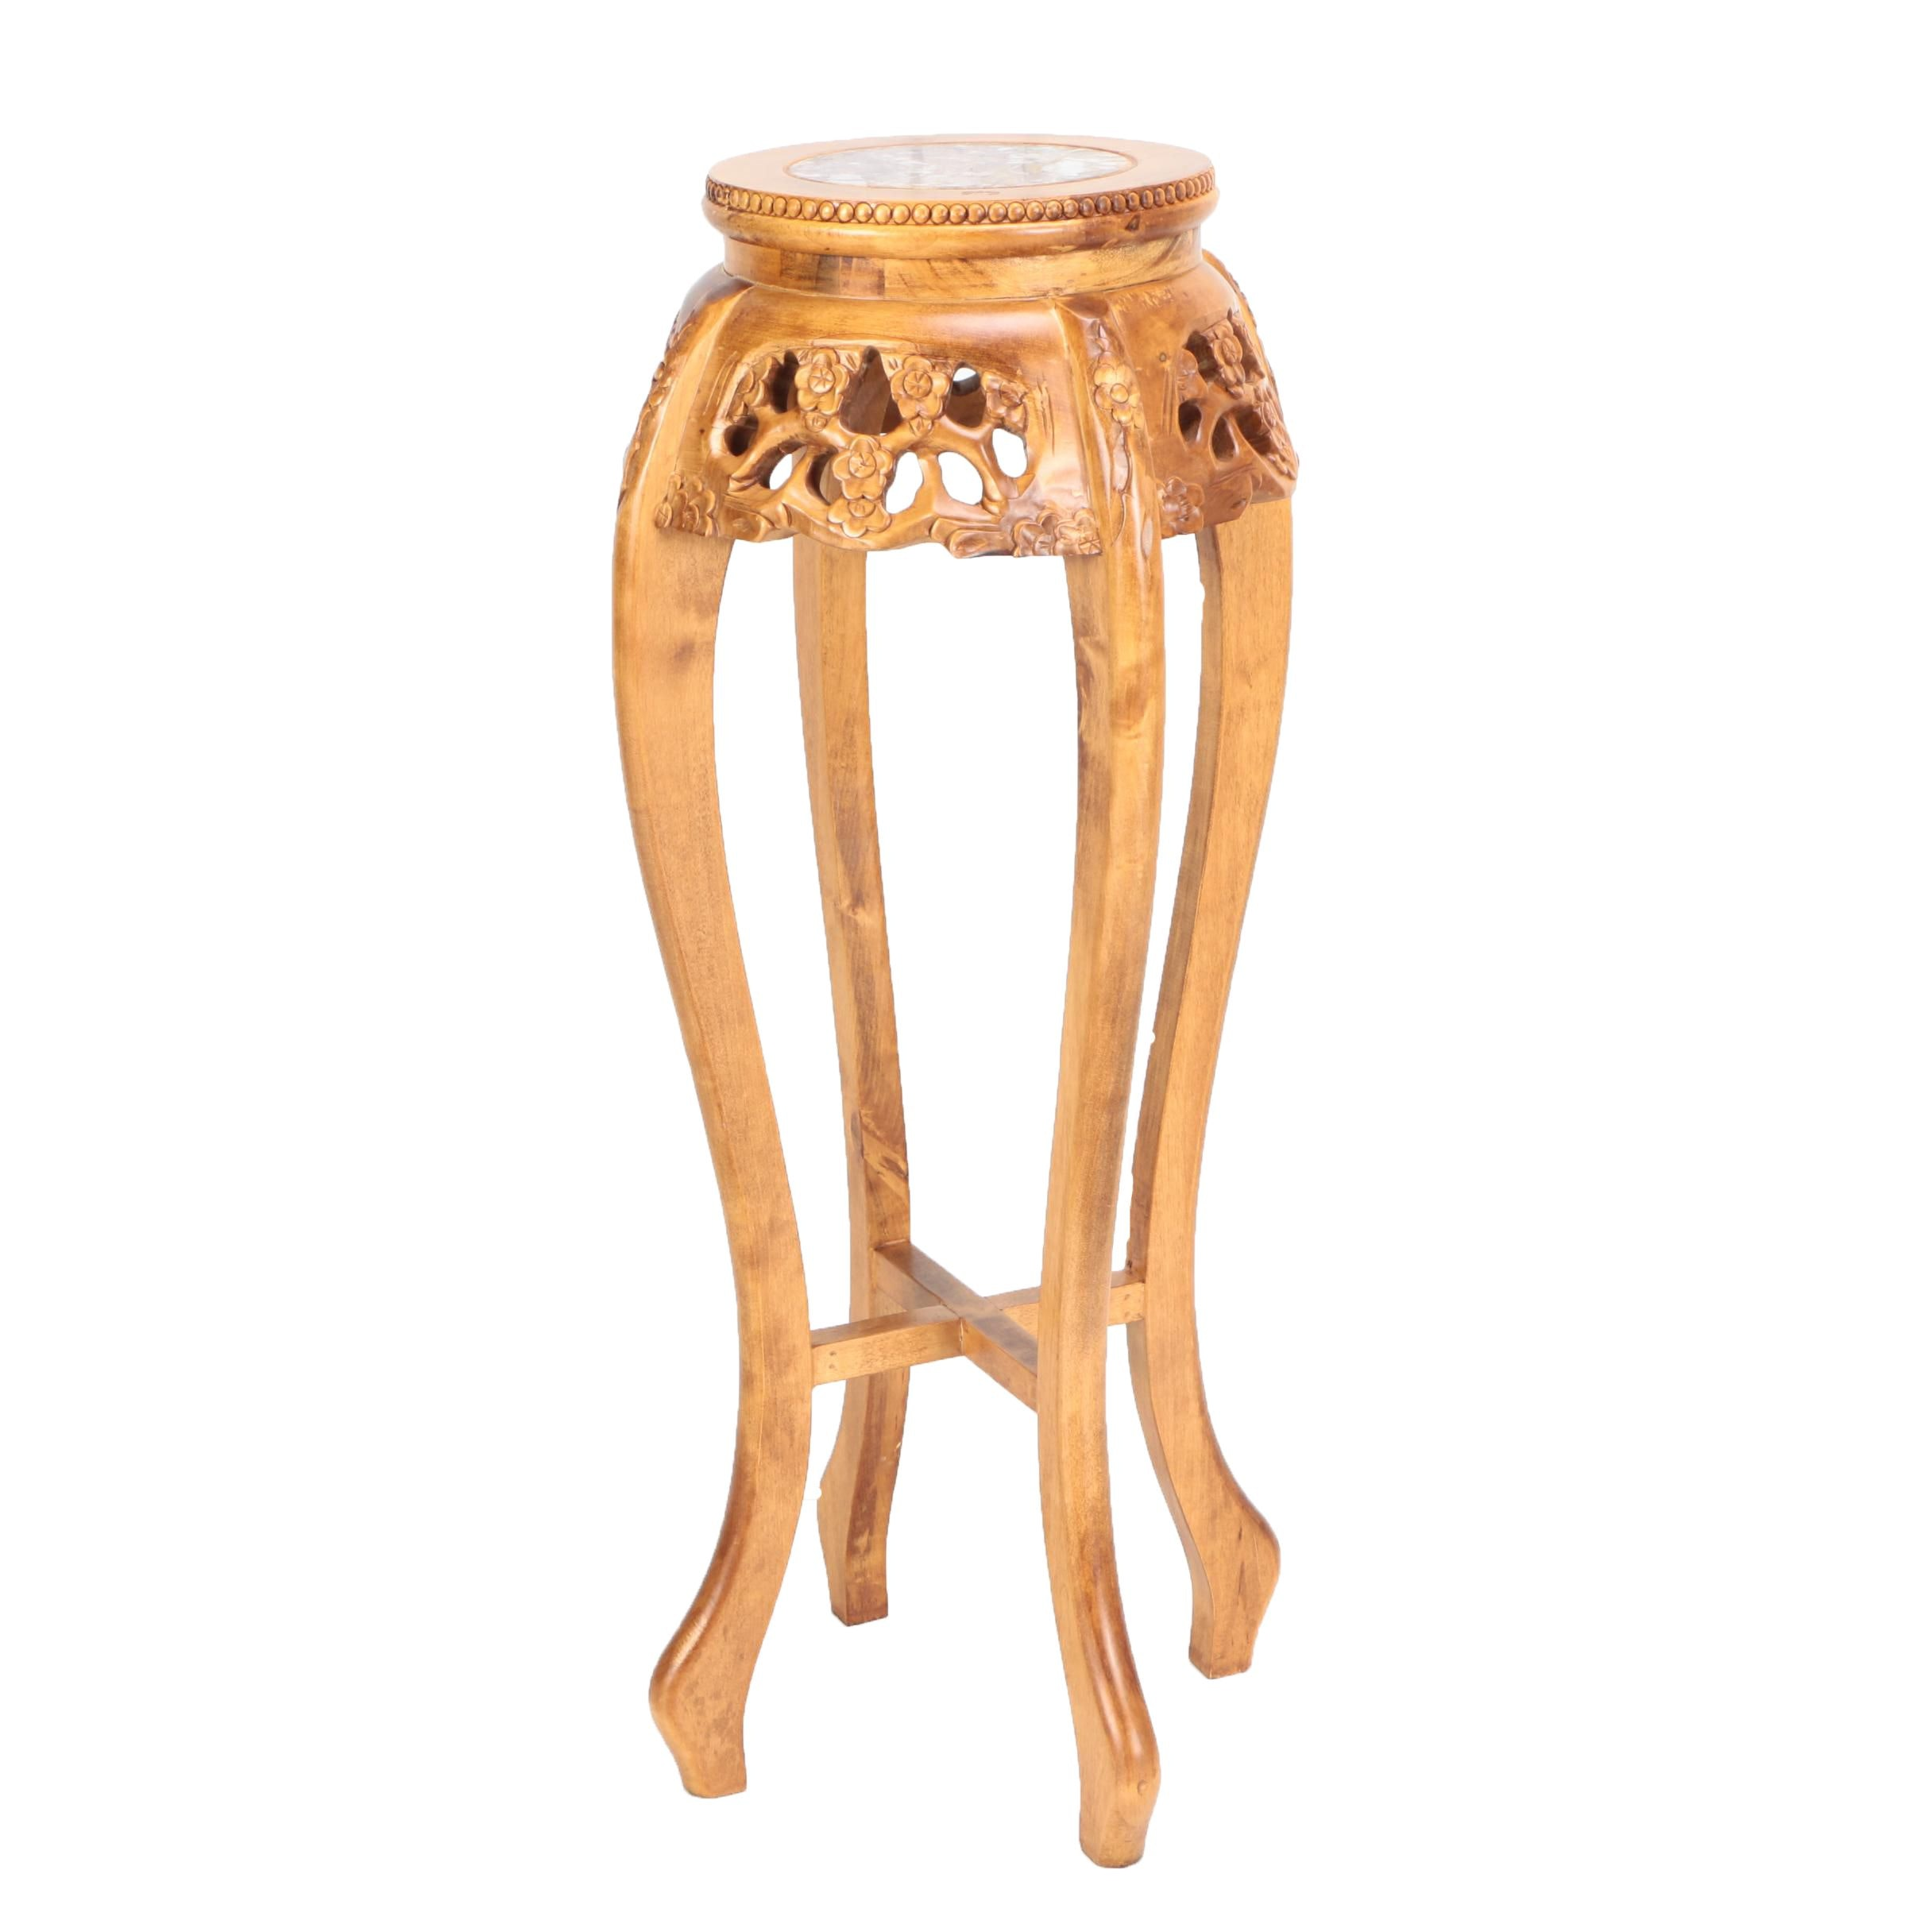 Chinese Hand-Carved Wooden Pedestal